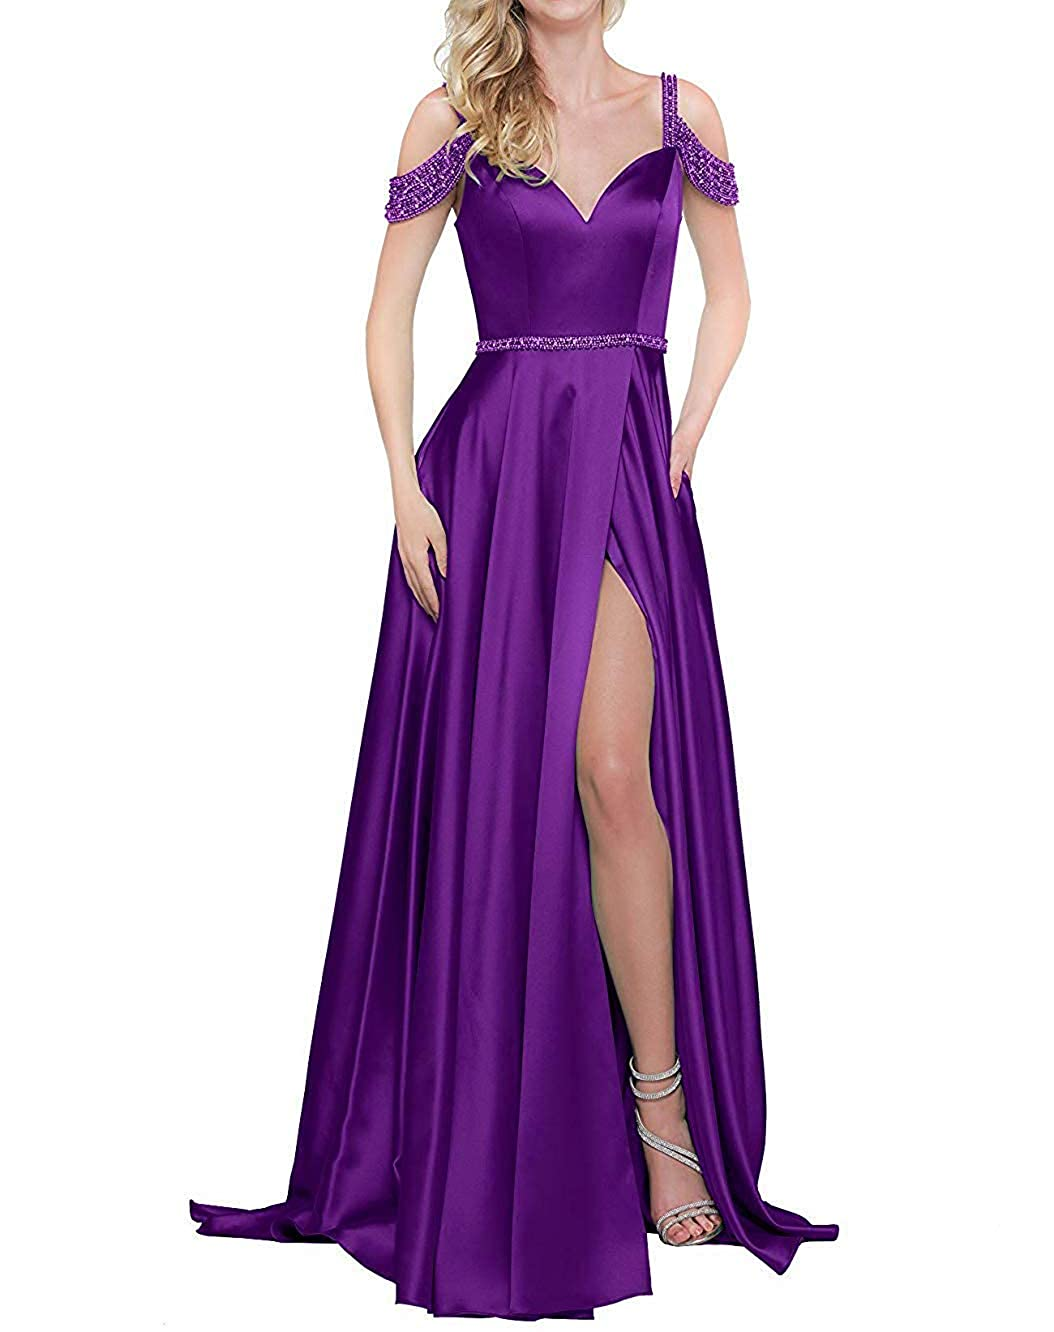 Purple ZLQQ Women's Off The Shoulder Satin Side Slit Prom Dress with Pockets Beaded A Line